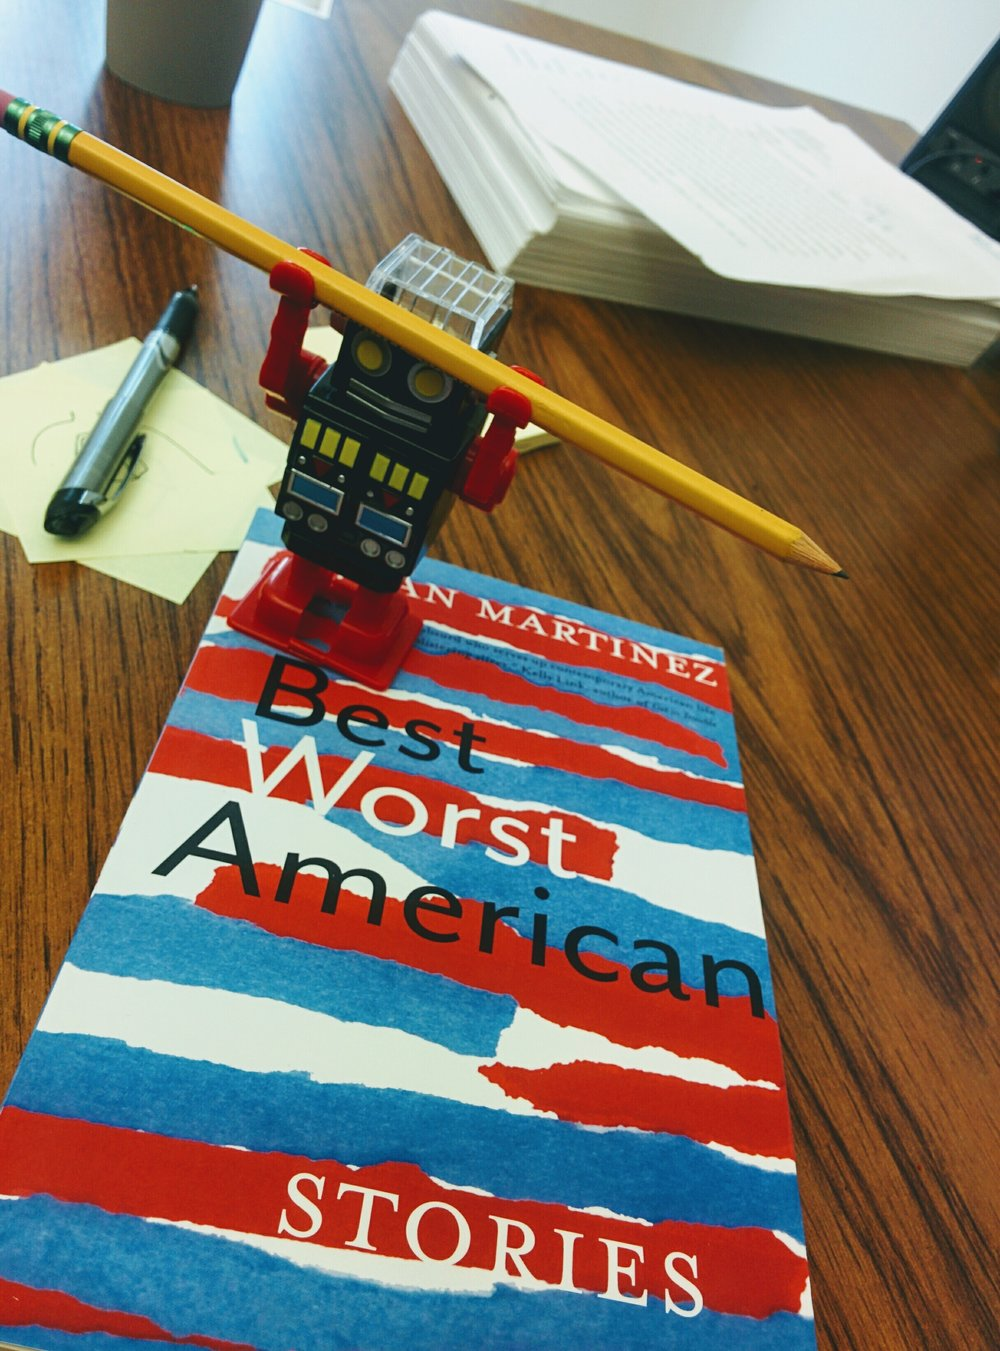 I'm so sorry for all the self-promotion! The robot says if I don't self-promote the h*ck out of this book he will do something unspeakable with this pencil. Blame the robot don't blame me. The robot demands that you buy 500 copies of my book thank you.